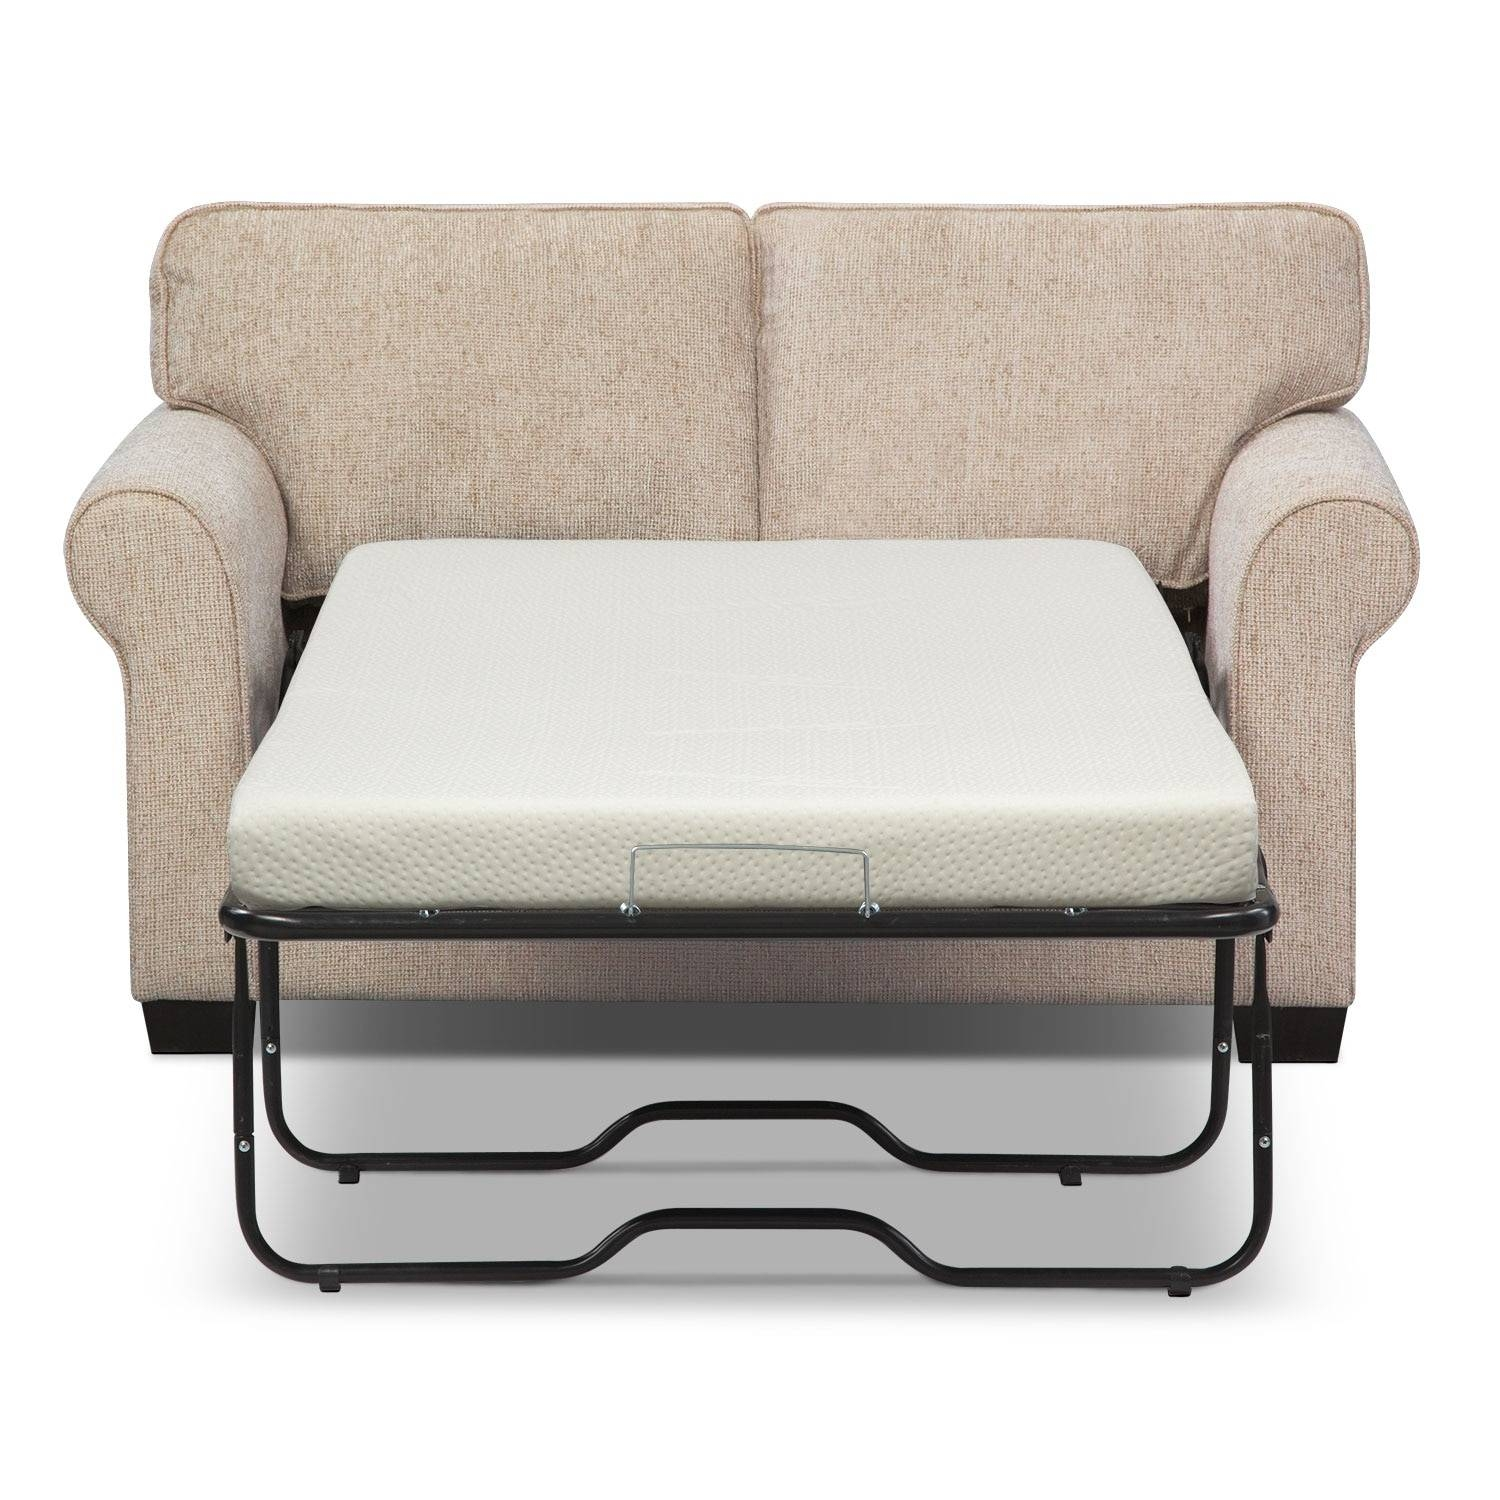 Fletcher Twin Memory Foam Sleeper Sofa - Beige | Value City Furniture inside Twin Sleeper Sofa Chairs (Image 6 of 30)